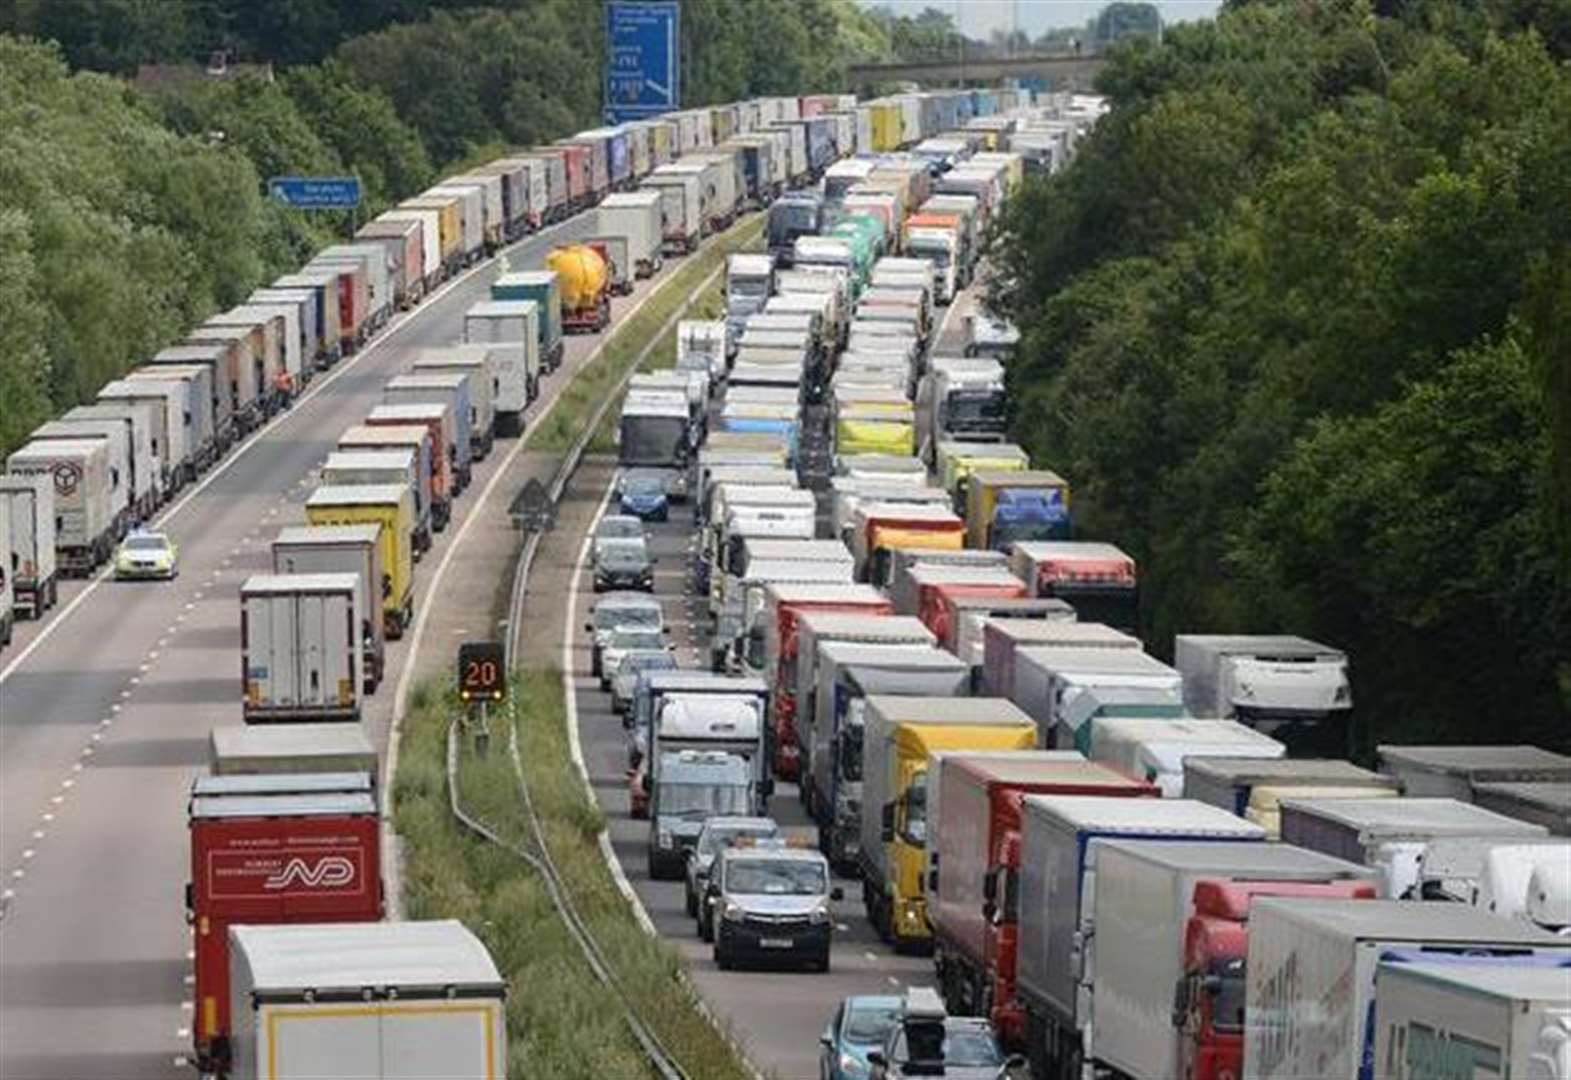 Lorry parks touted as solution to Op Stack